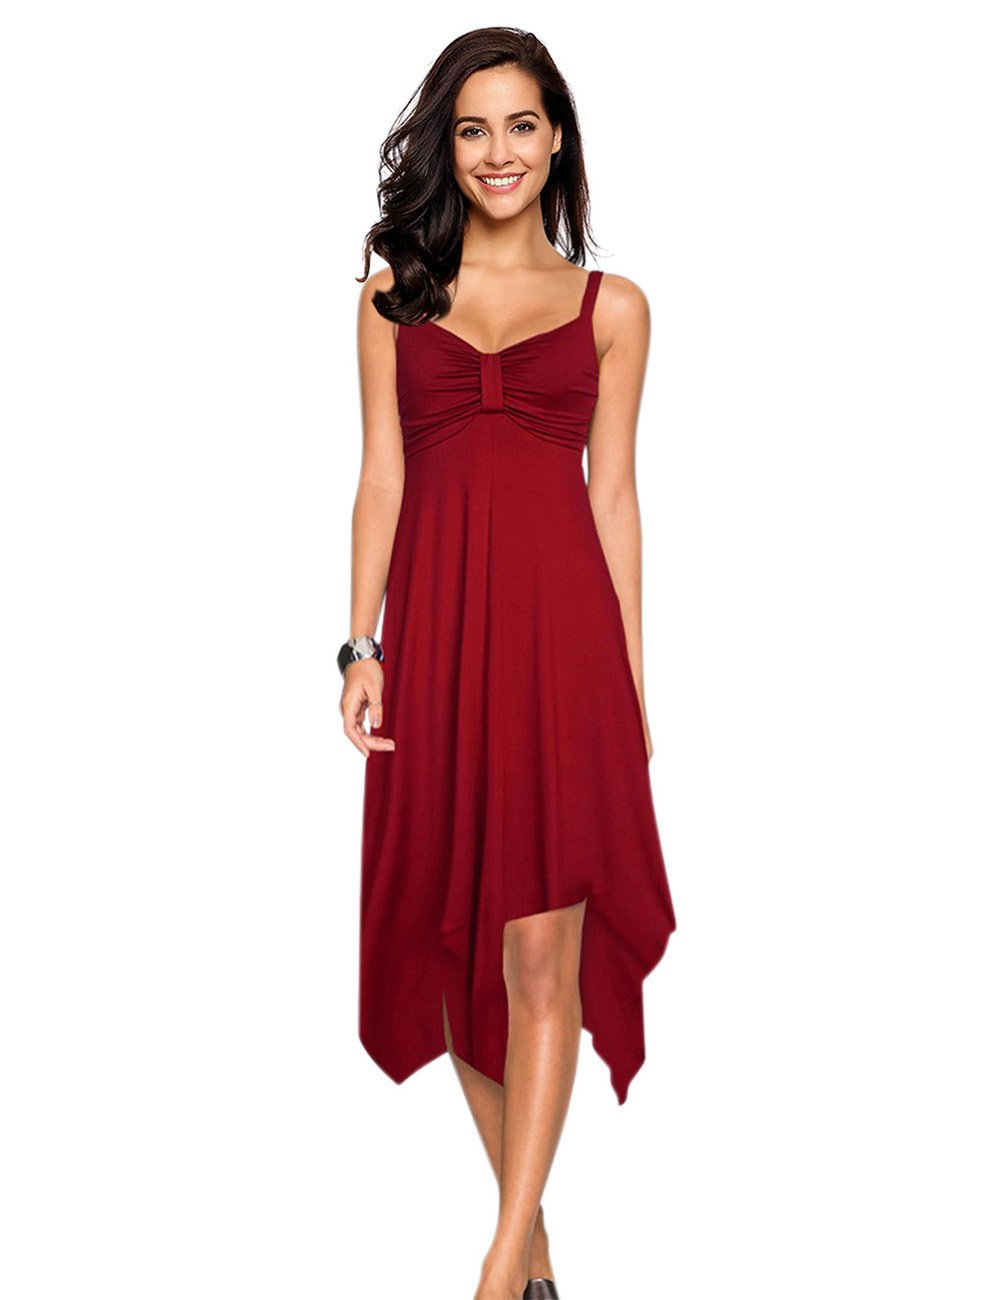 Leadingstar Women Spaghetti Strap Irregular Hem Summer Casual Beach Flared Dress Sundress-Burgundy S by Leadingstar (Image #1)